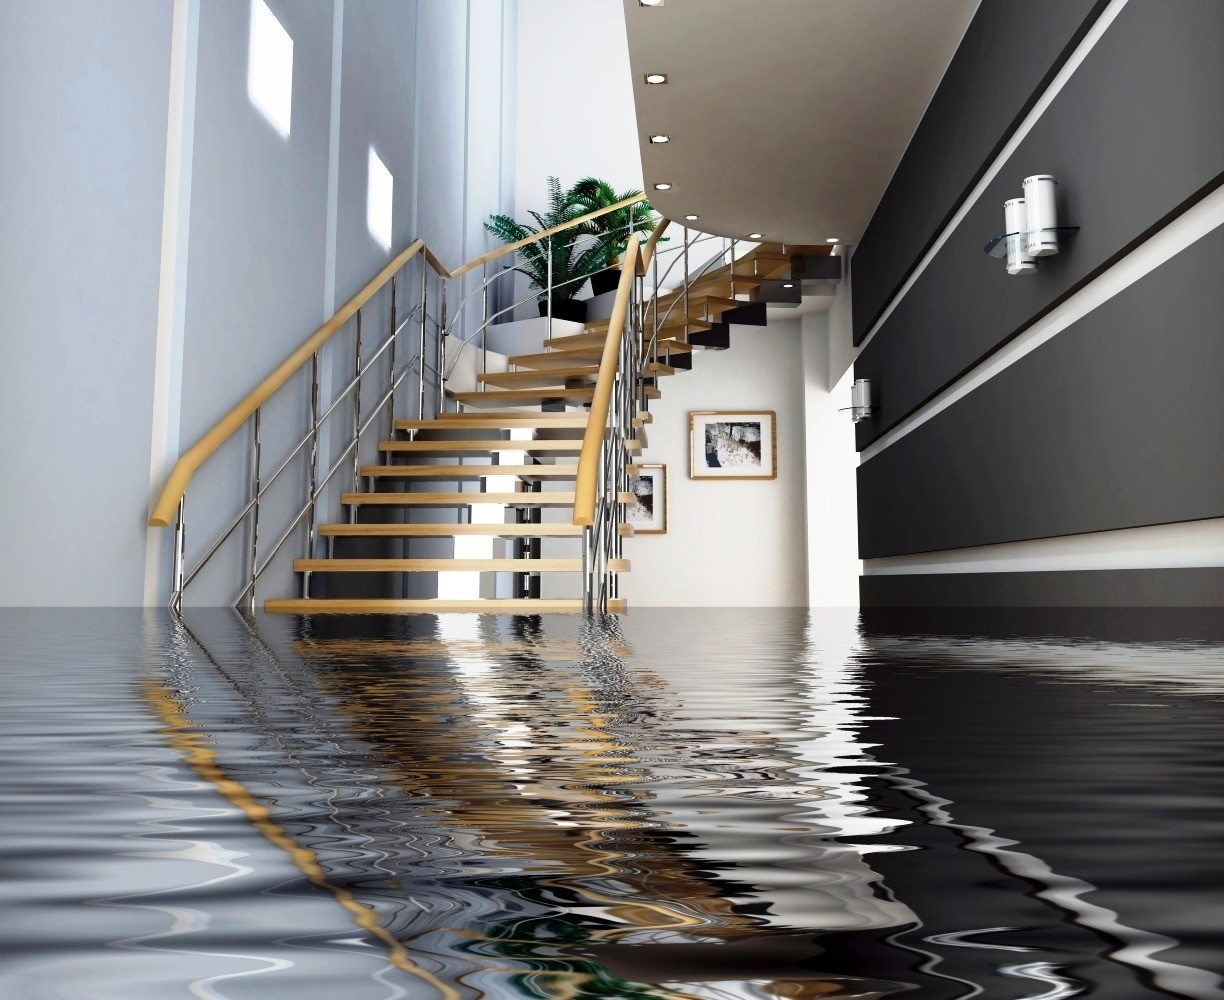 water-damage loss assessor dublin